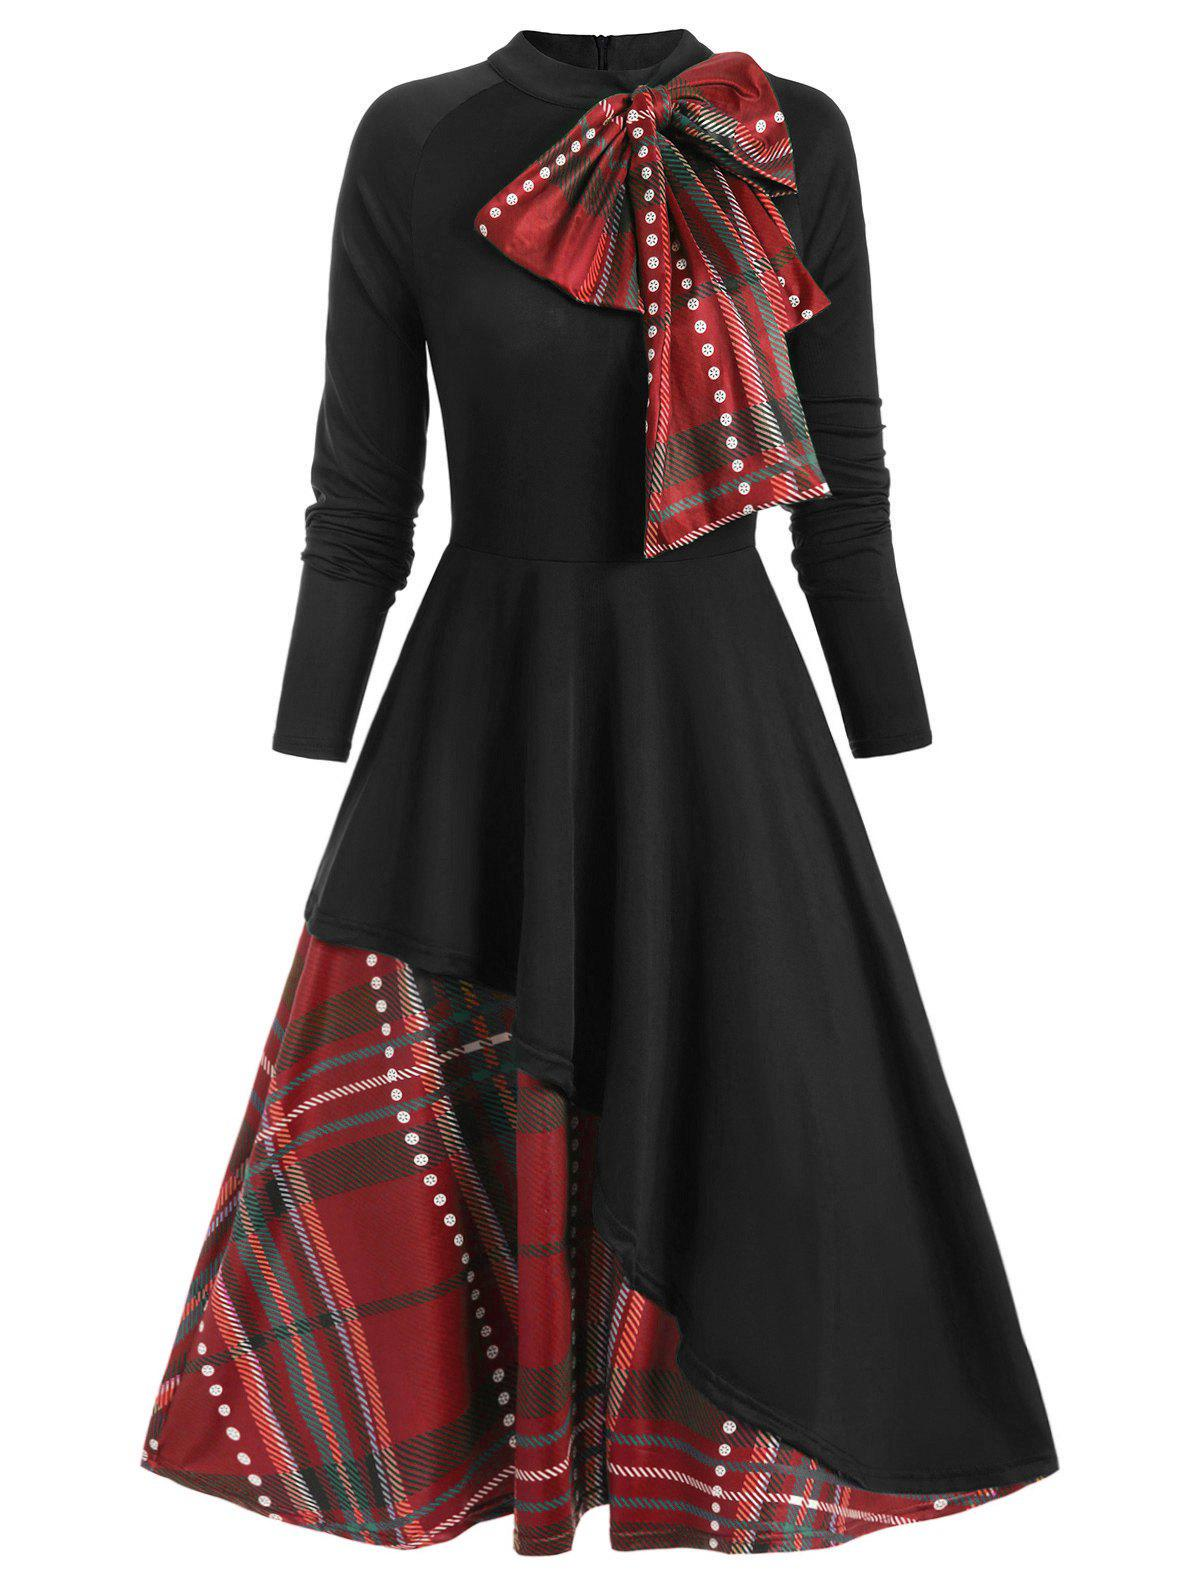 Trendy Plaid Contrast Bowknot Flared Overlay Dress